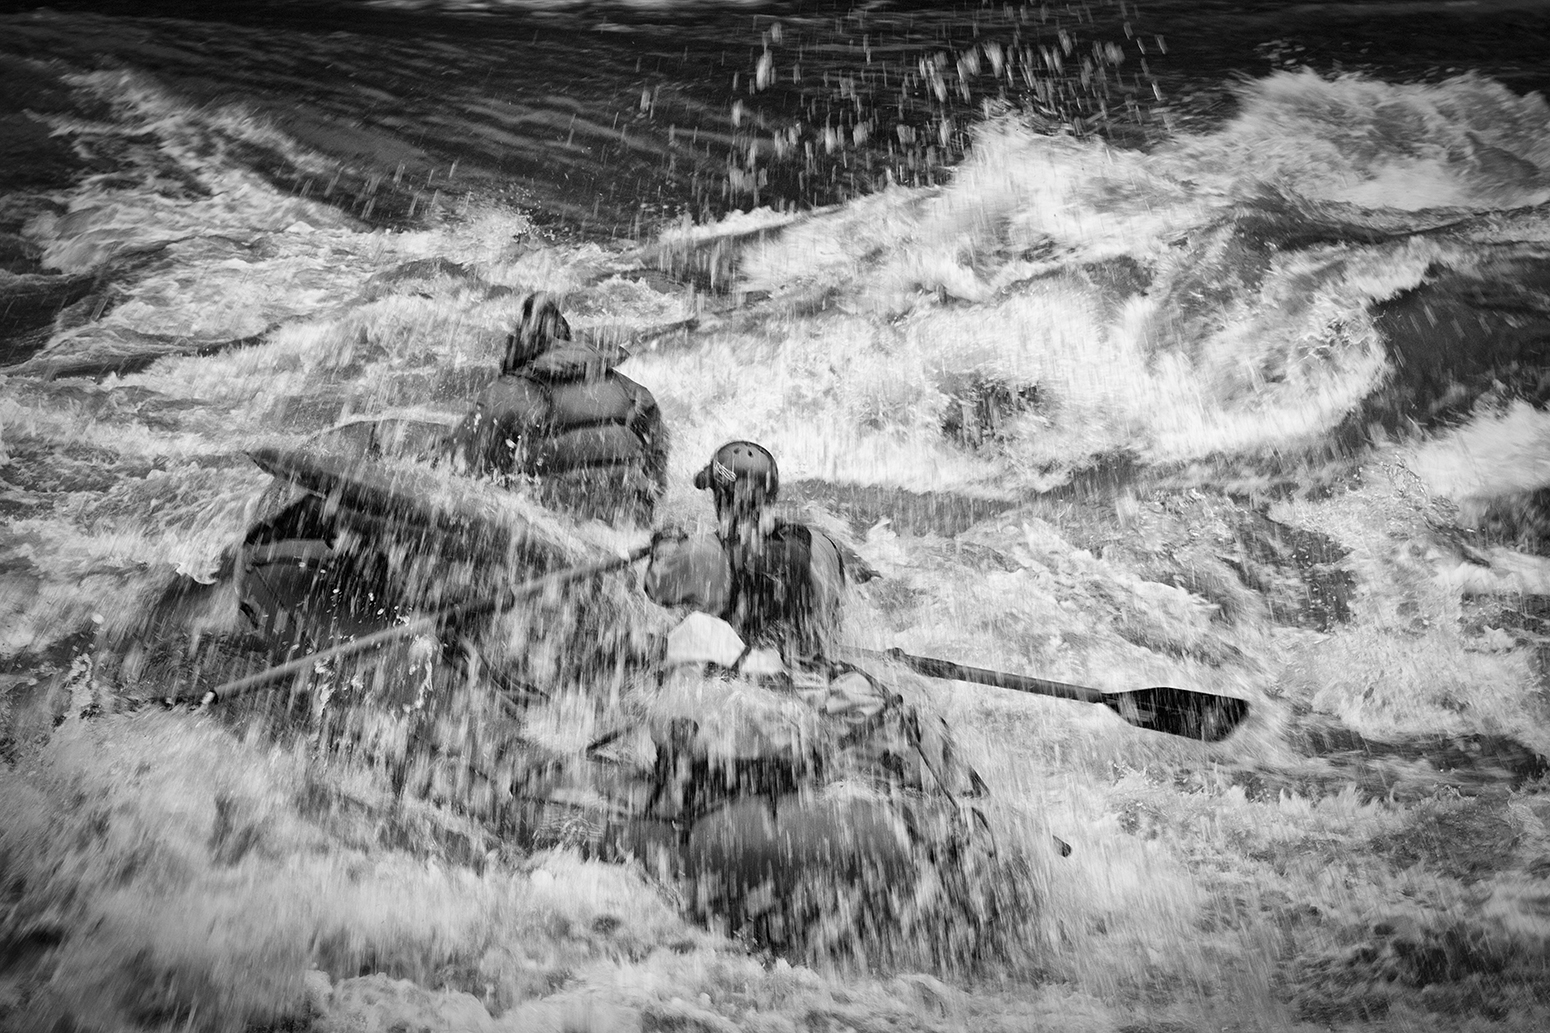 River guide Thomas Batey encountering turbulent water in  Chitham Rapid at 76,000 cfs in spring 2010.